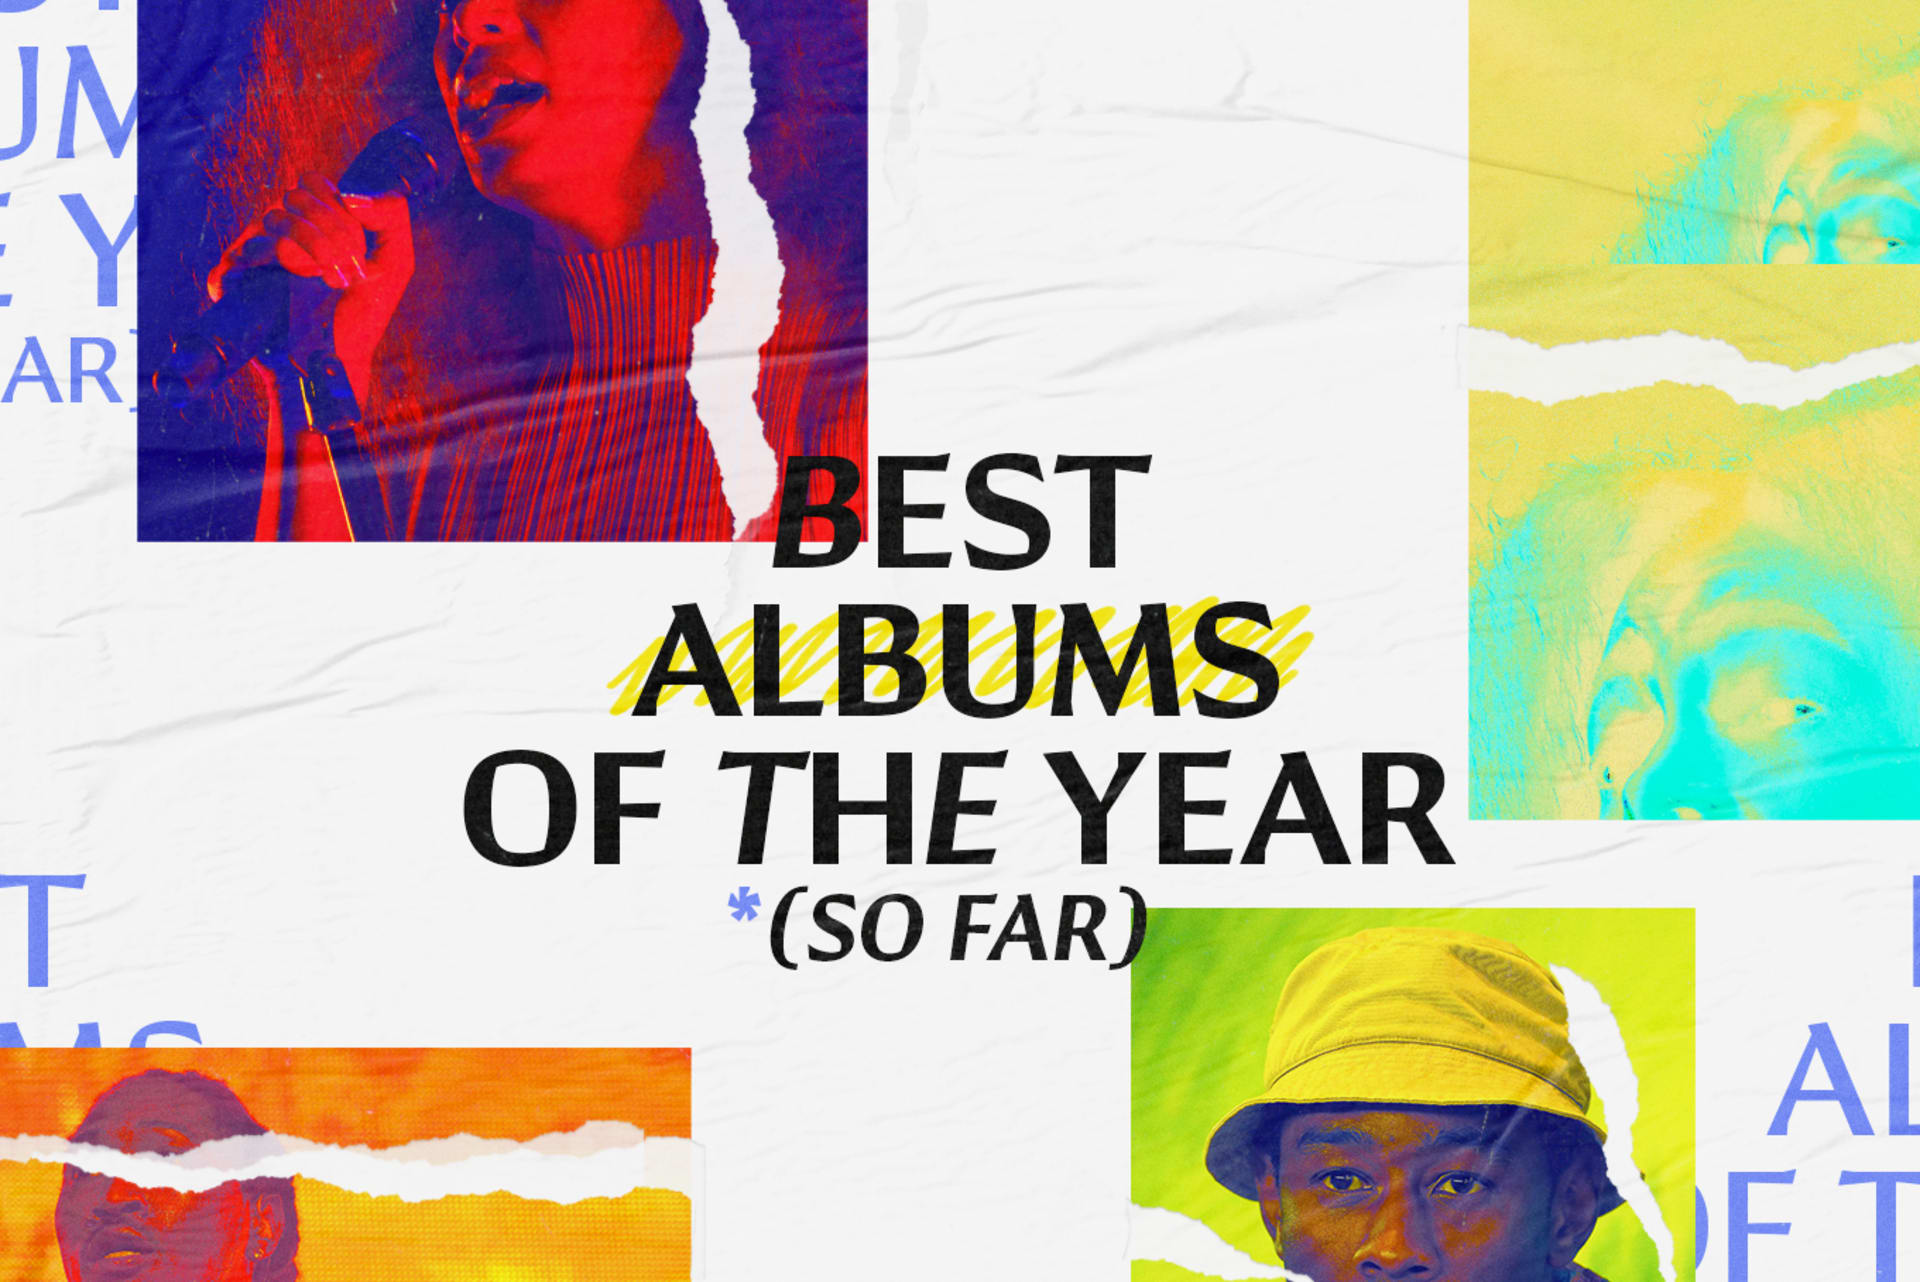 Best Album Of 2019 Best Albums of 2019 (So Far): Top Albums of The Year | Complex